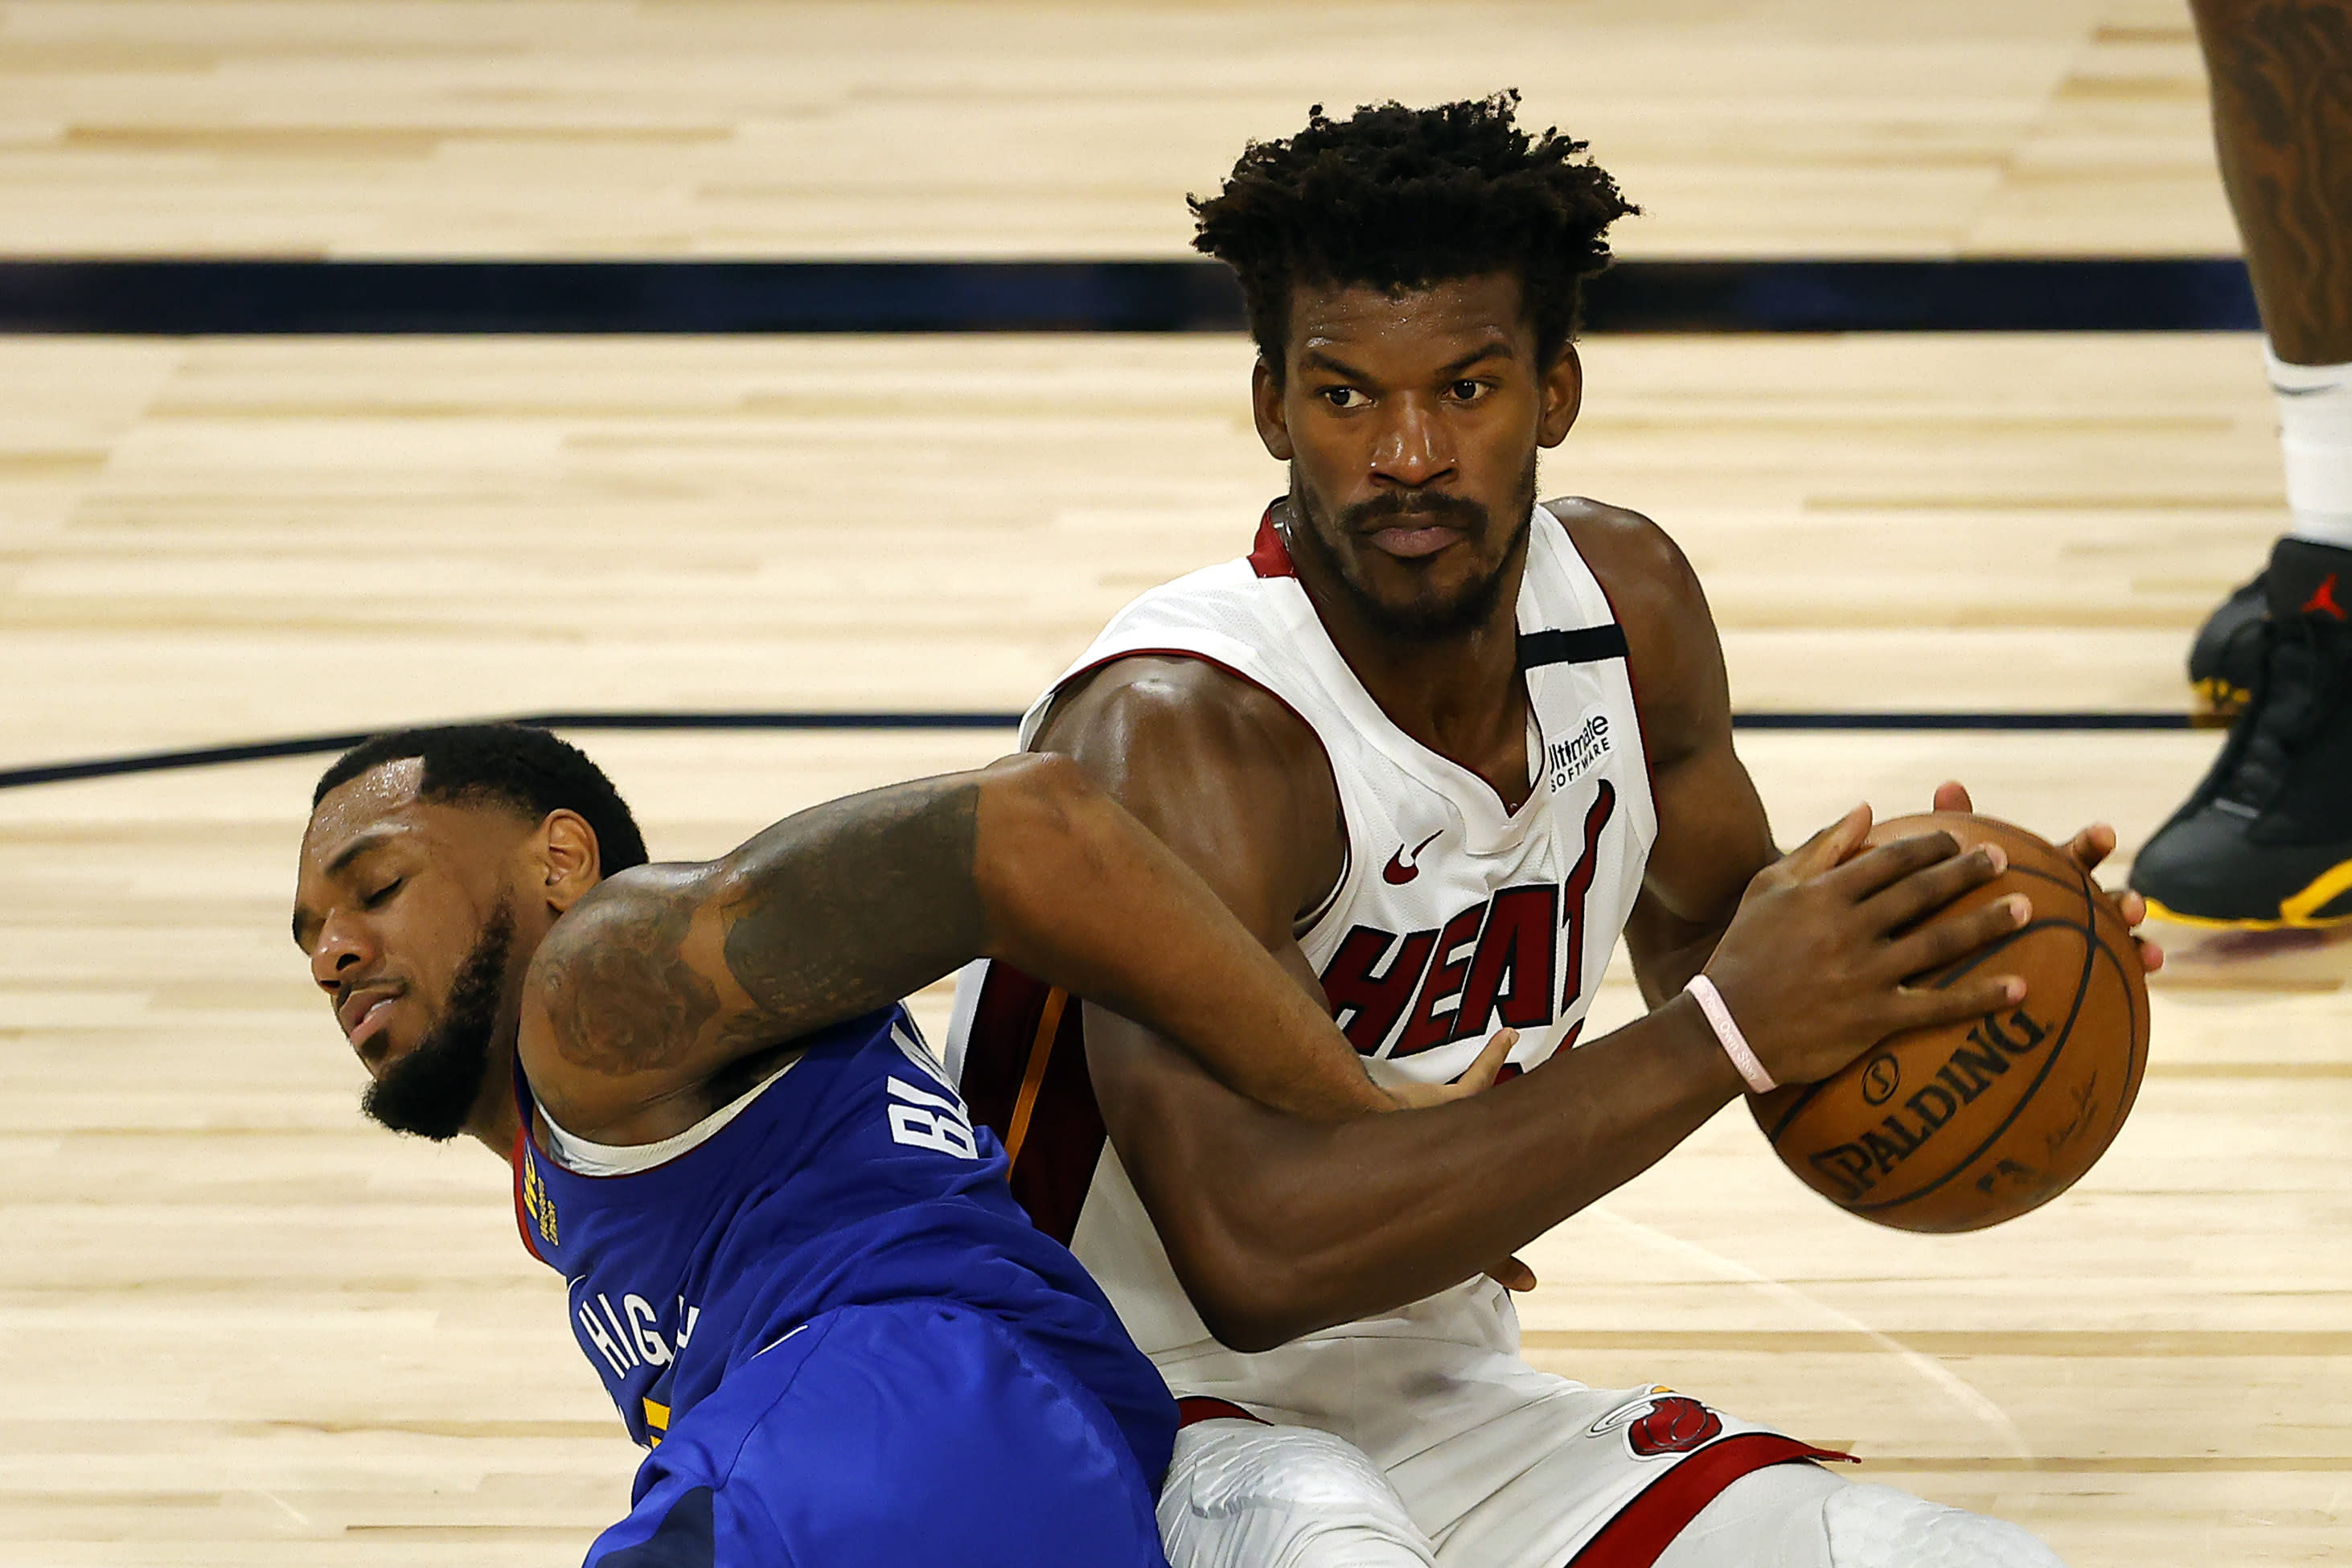 Denver Nuggets' Monte Morris tangles for the ball against Miami Heat's Jimmy Butler during an NBA basketball game, Saturday, Aug. 1, 2020, in Lake Buena Vista, Fla. (Kevin C. Cox/Pool Photo via AP)